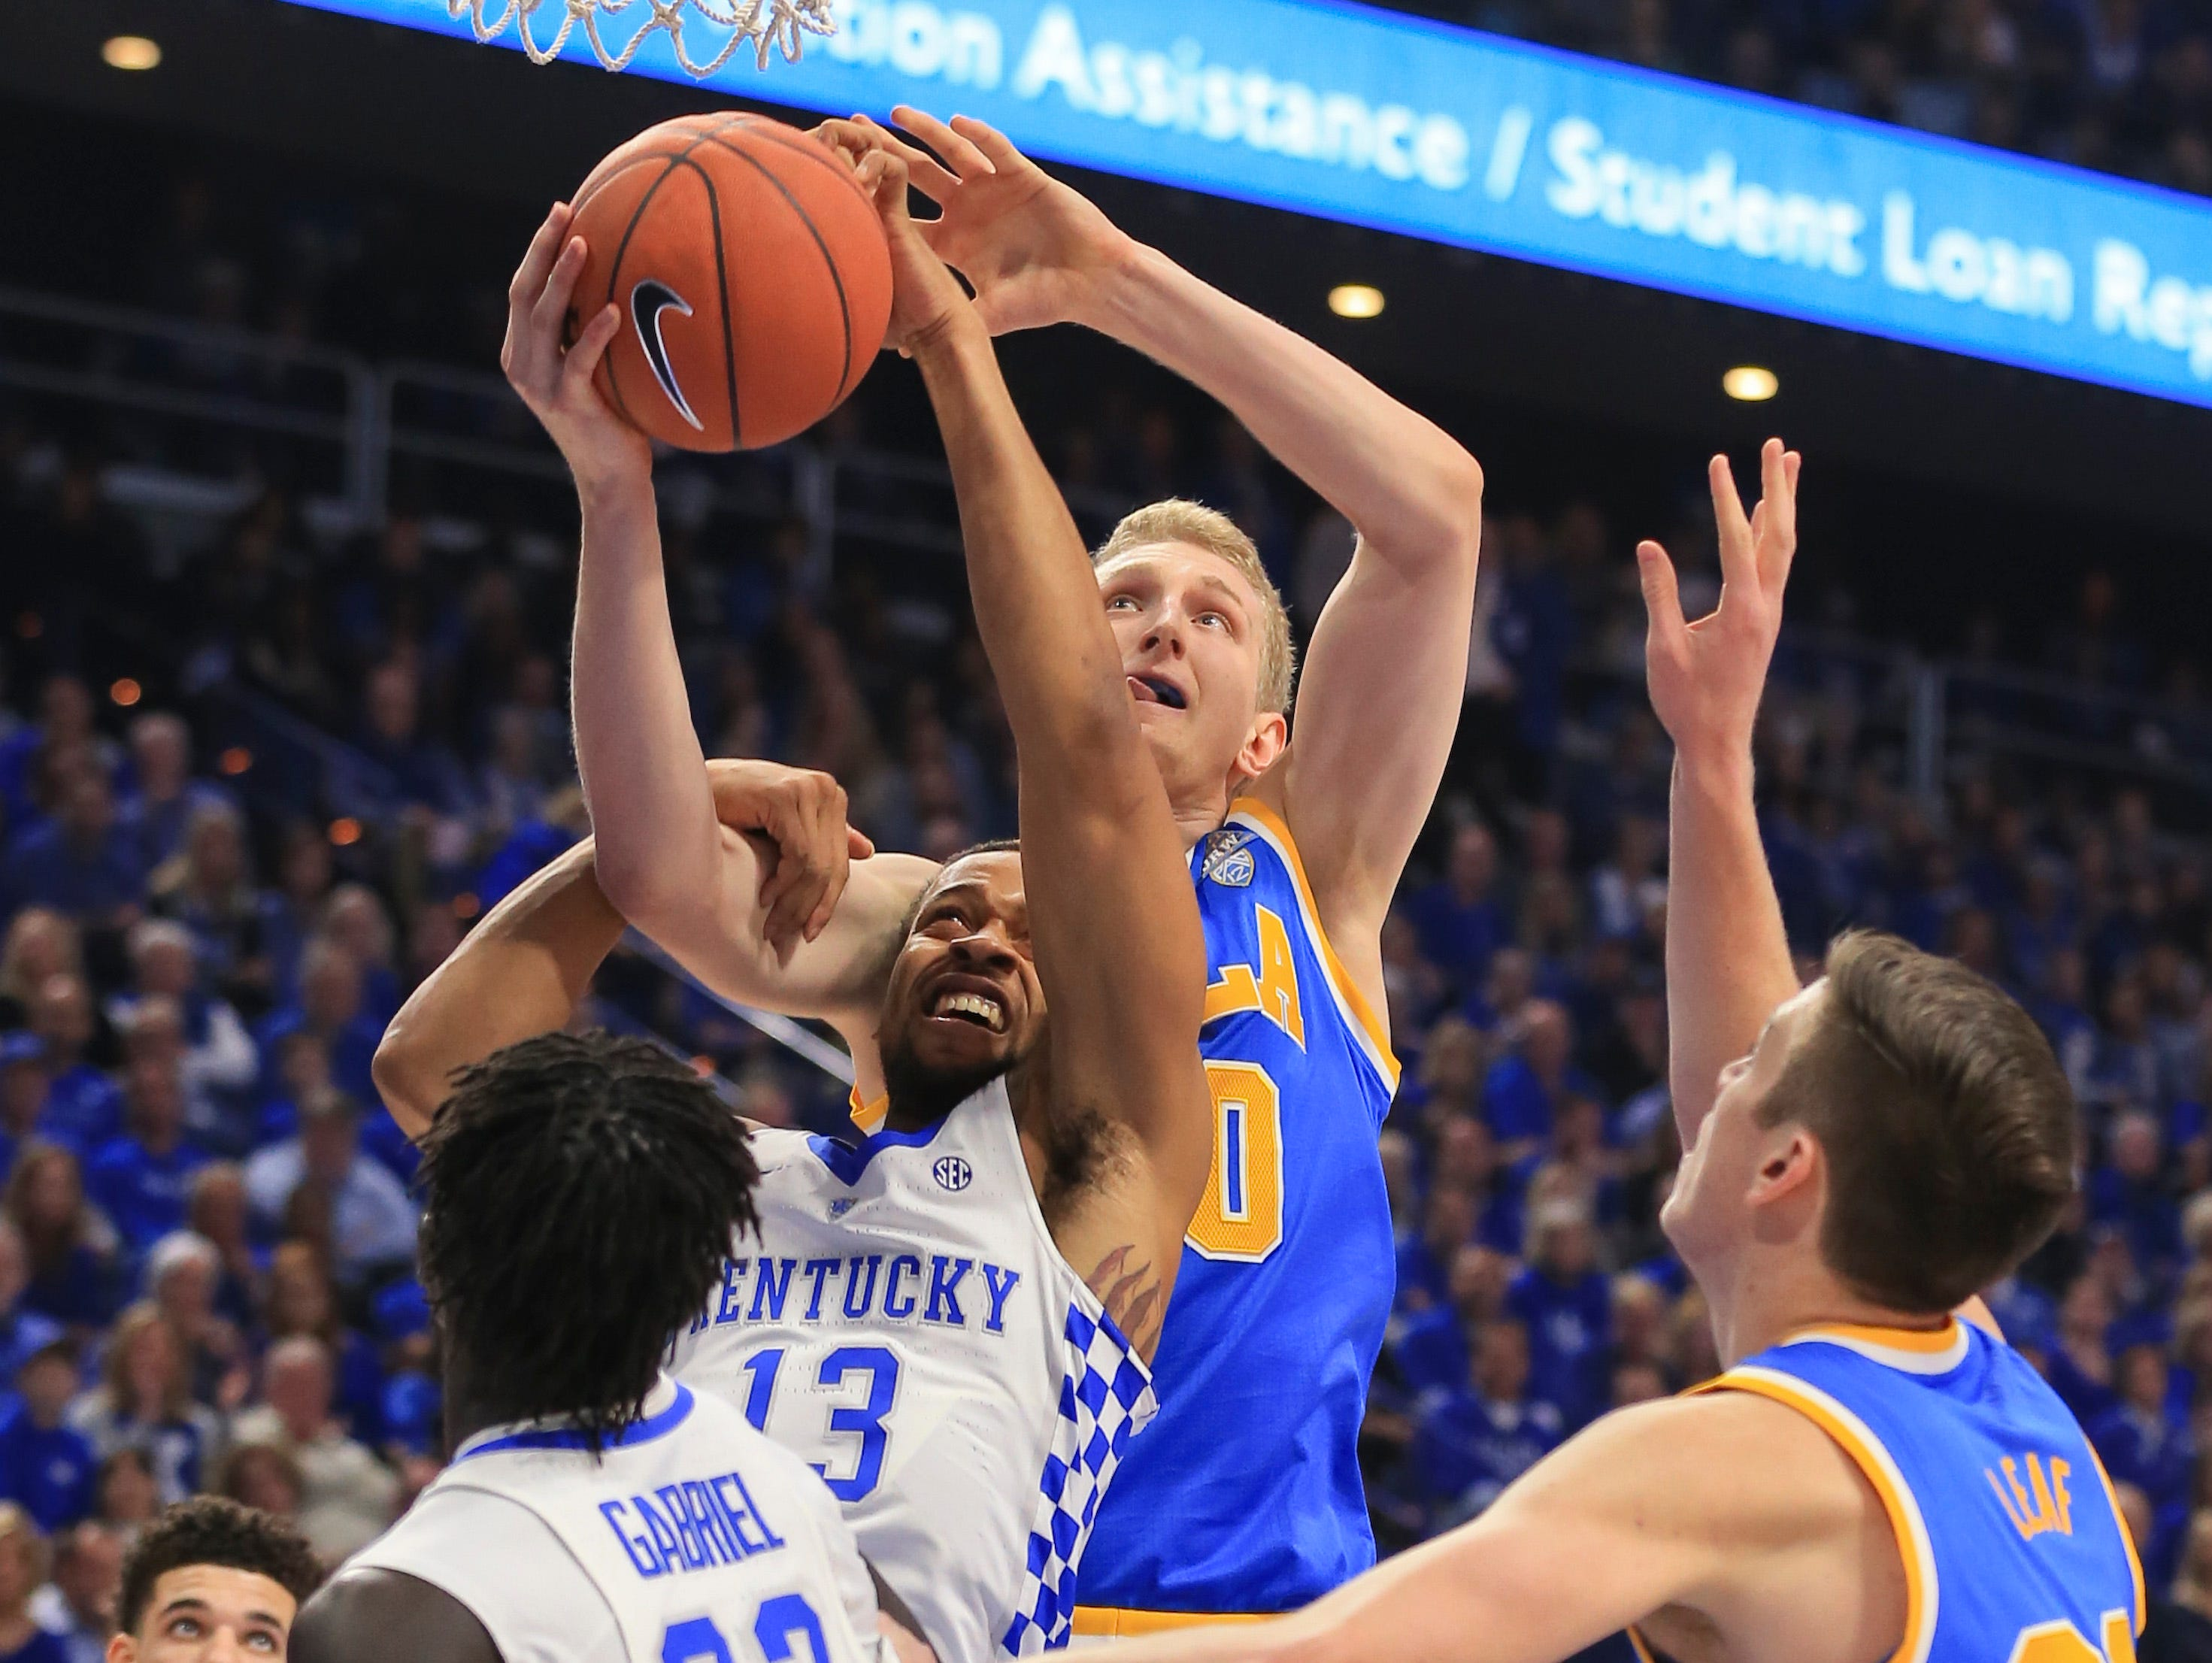 Kentucky's Isaiah Briscoe had to use his hand to get around a pressuring Thomas Welsh of UCLA in the first half in the Bruins' upset win over the Wildcats 97-92 Saturday afternoon at Rupp Arena.